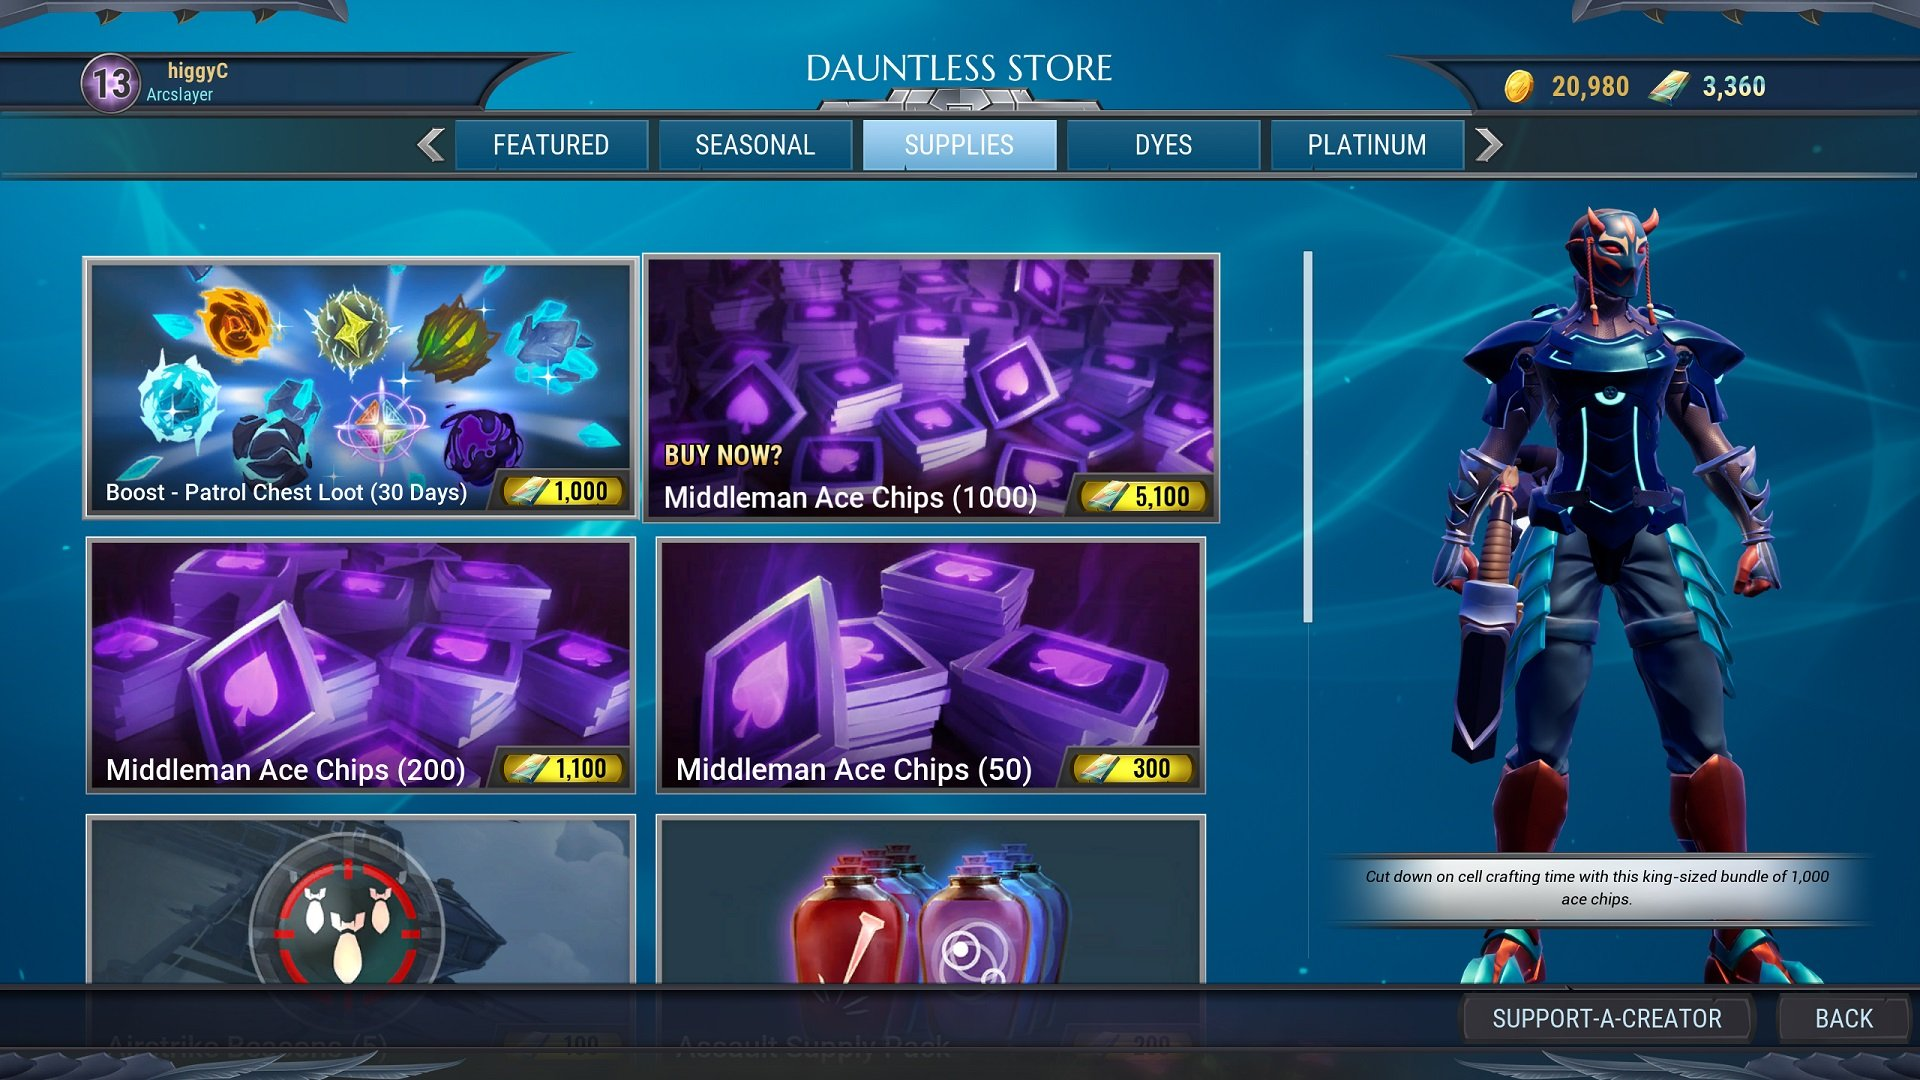 Dauntless cell fusion ace chips cost